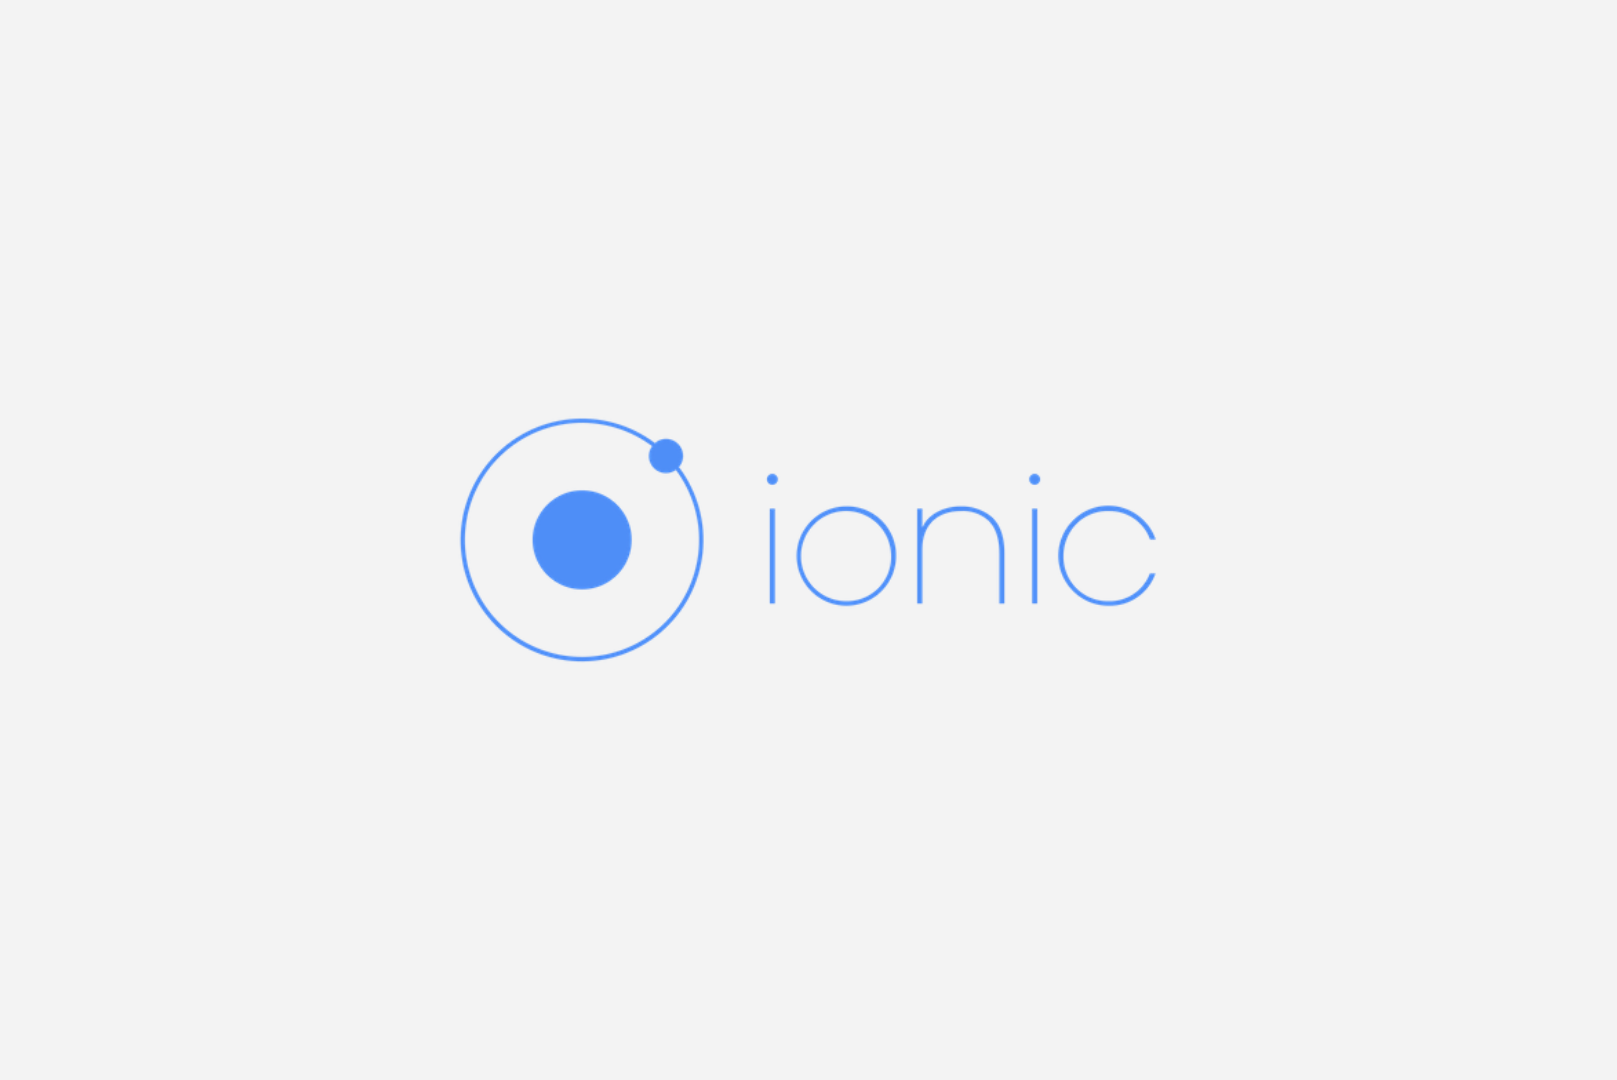 Ionic Development for Android